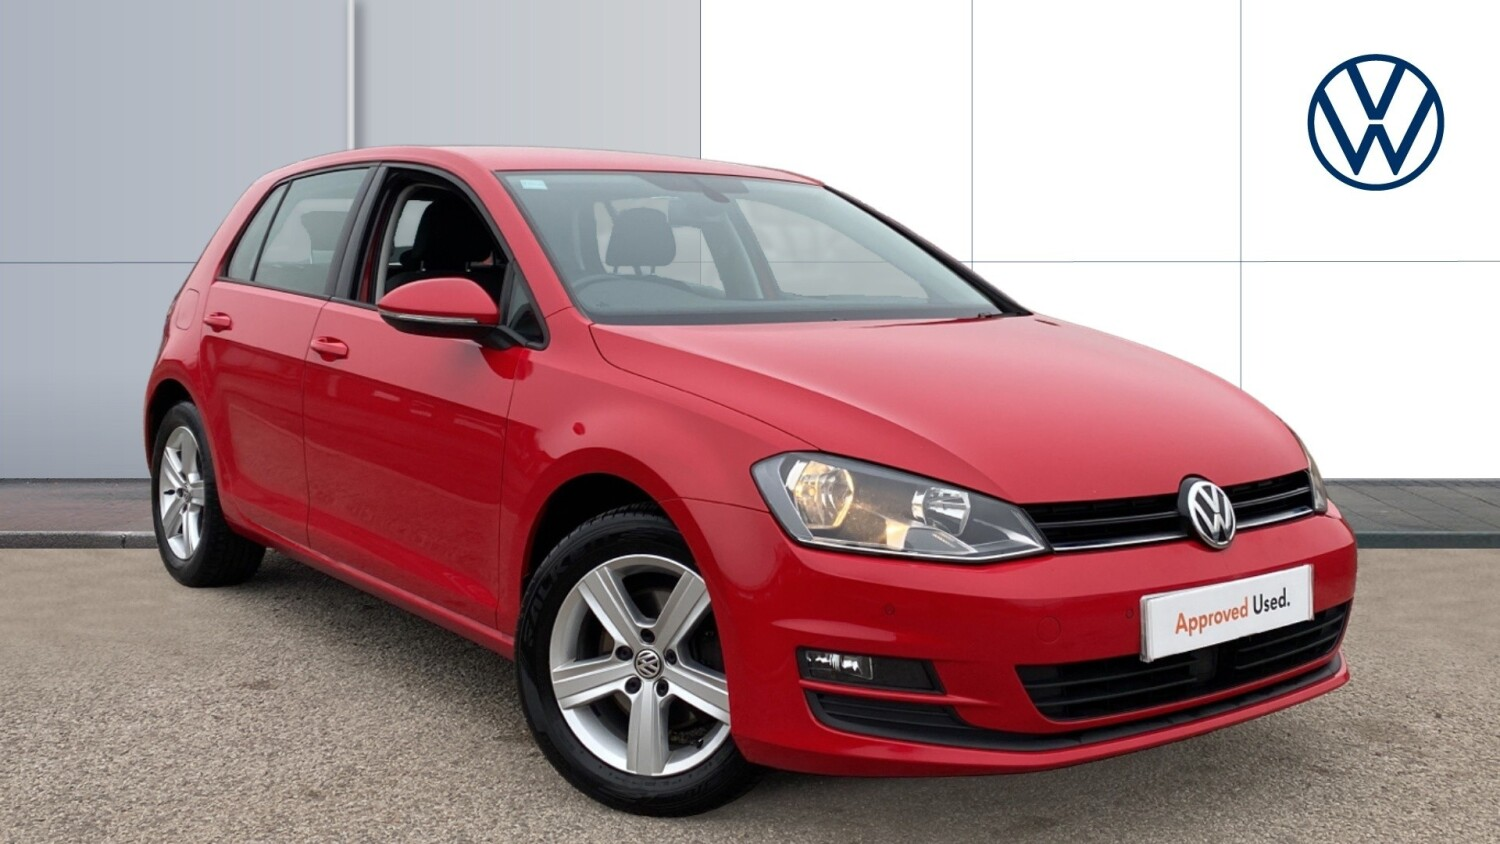 used volkswagen golf 1 4 tsi match 5dr petrol hatchback for sale newcastle infiniti. Black Bedroom Furniture Sets. Home Design Ideas